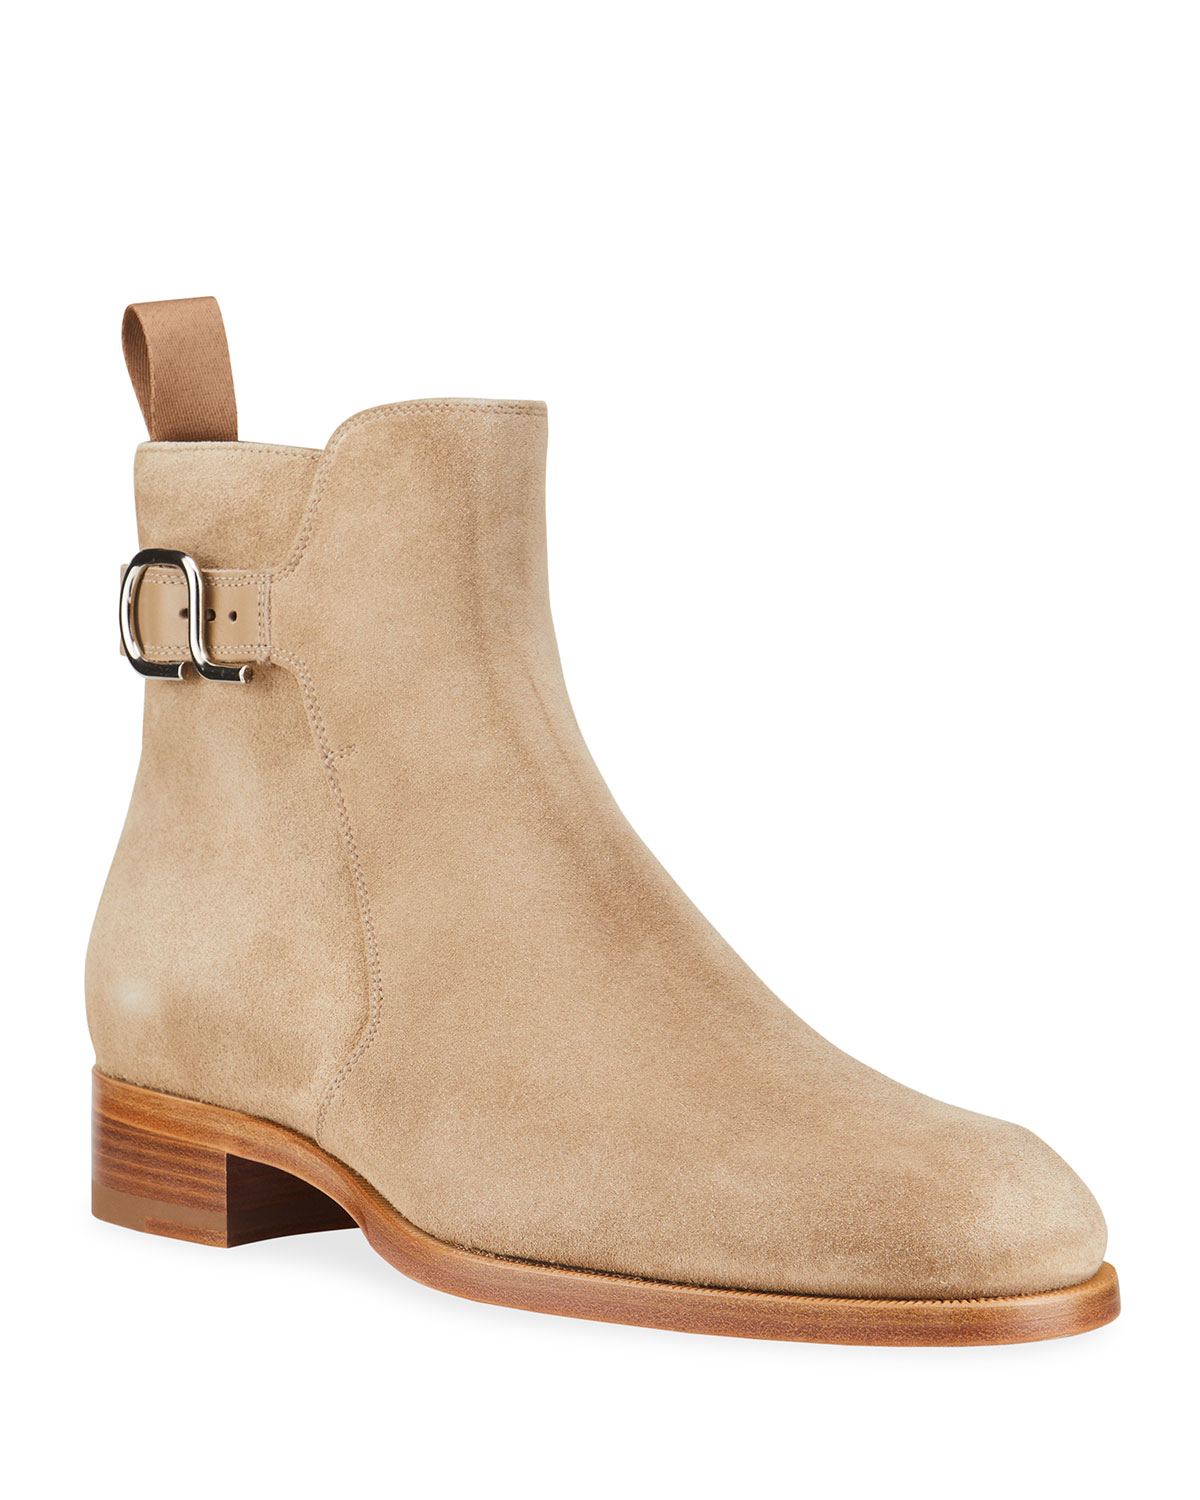 Christian Louboutin MEN'S VALIDO SUEDE RED SOLE CHELSEA BOOTS